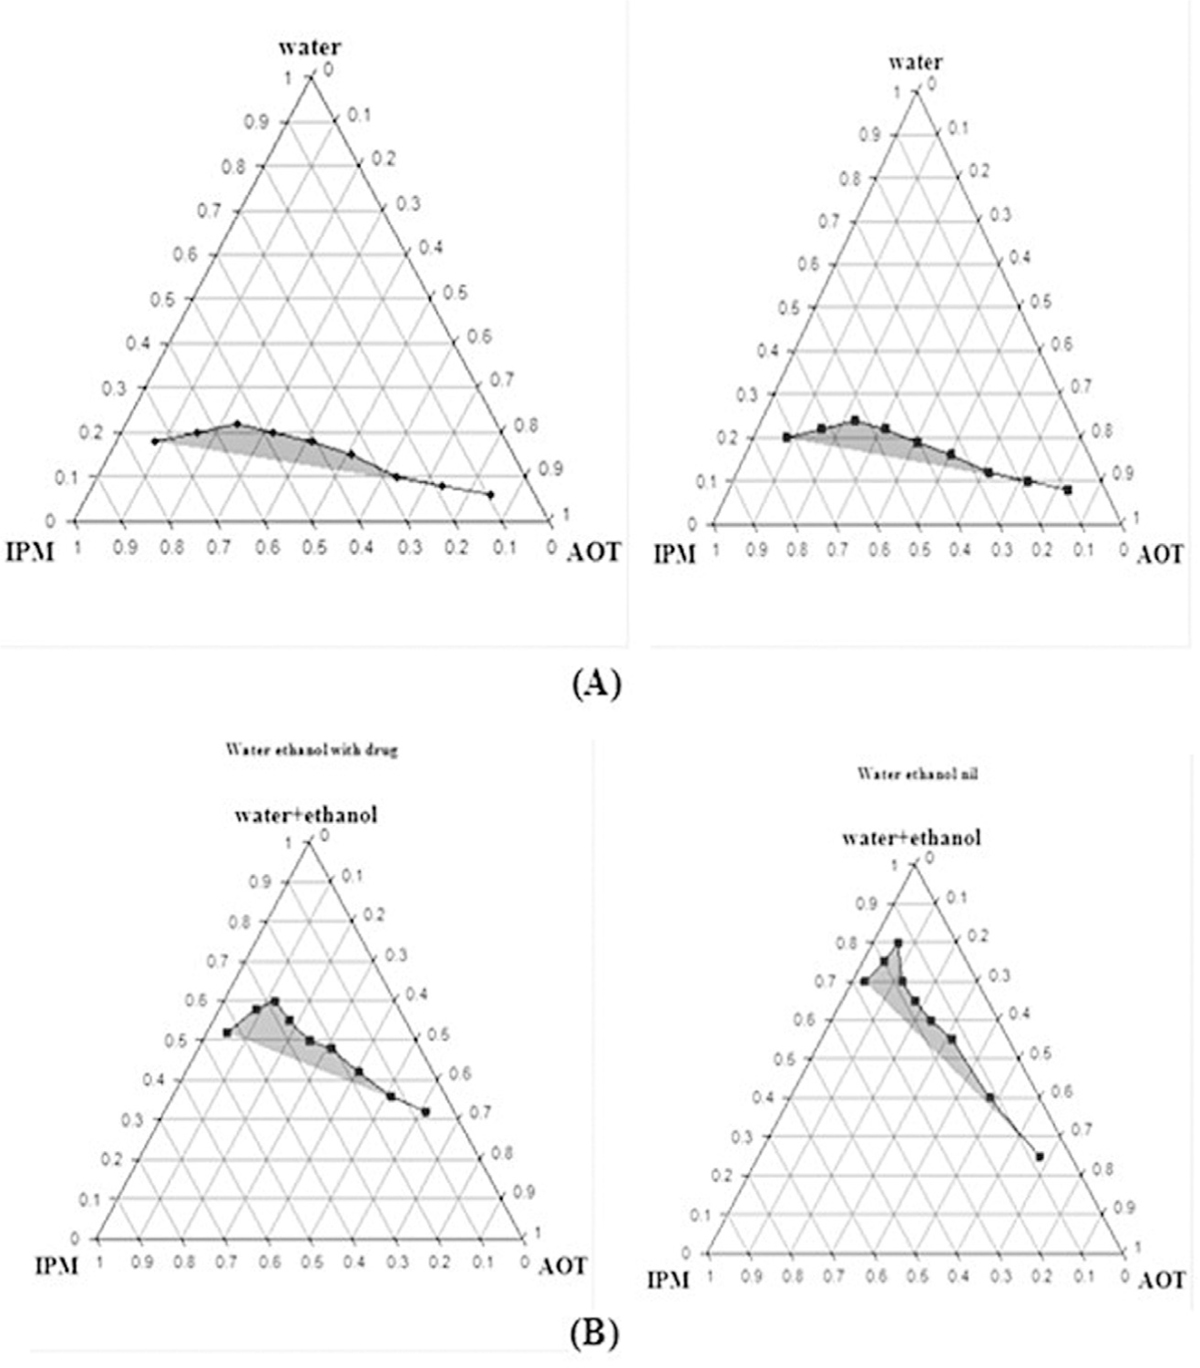 Preparation and characterization of oxcarbazepine microemulsion figure 4 a phase diagram of isopropyl myristate ipm aerosol ot aot and water with and without drug b phase diagram of ipm aot and ethanol pooptronica